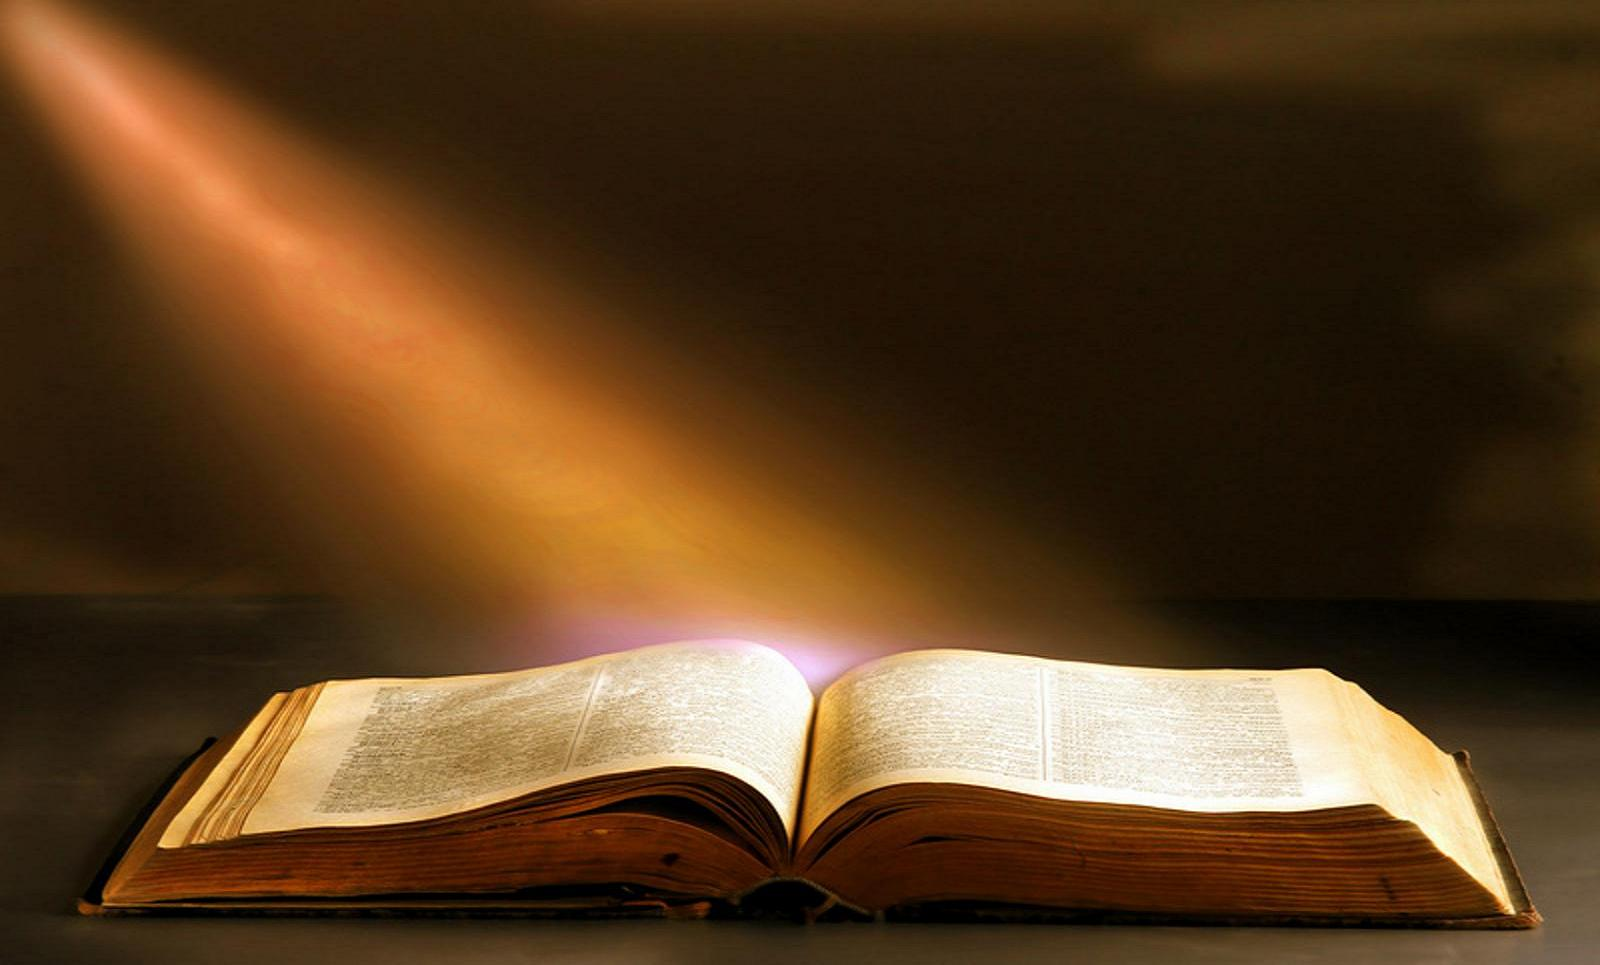 Some Background on Bible Translations